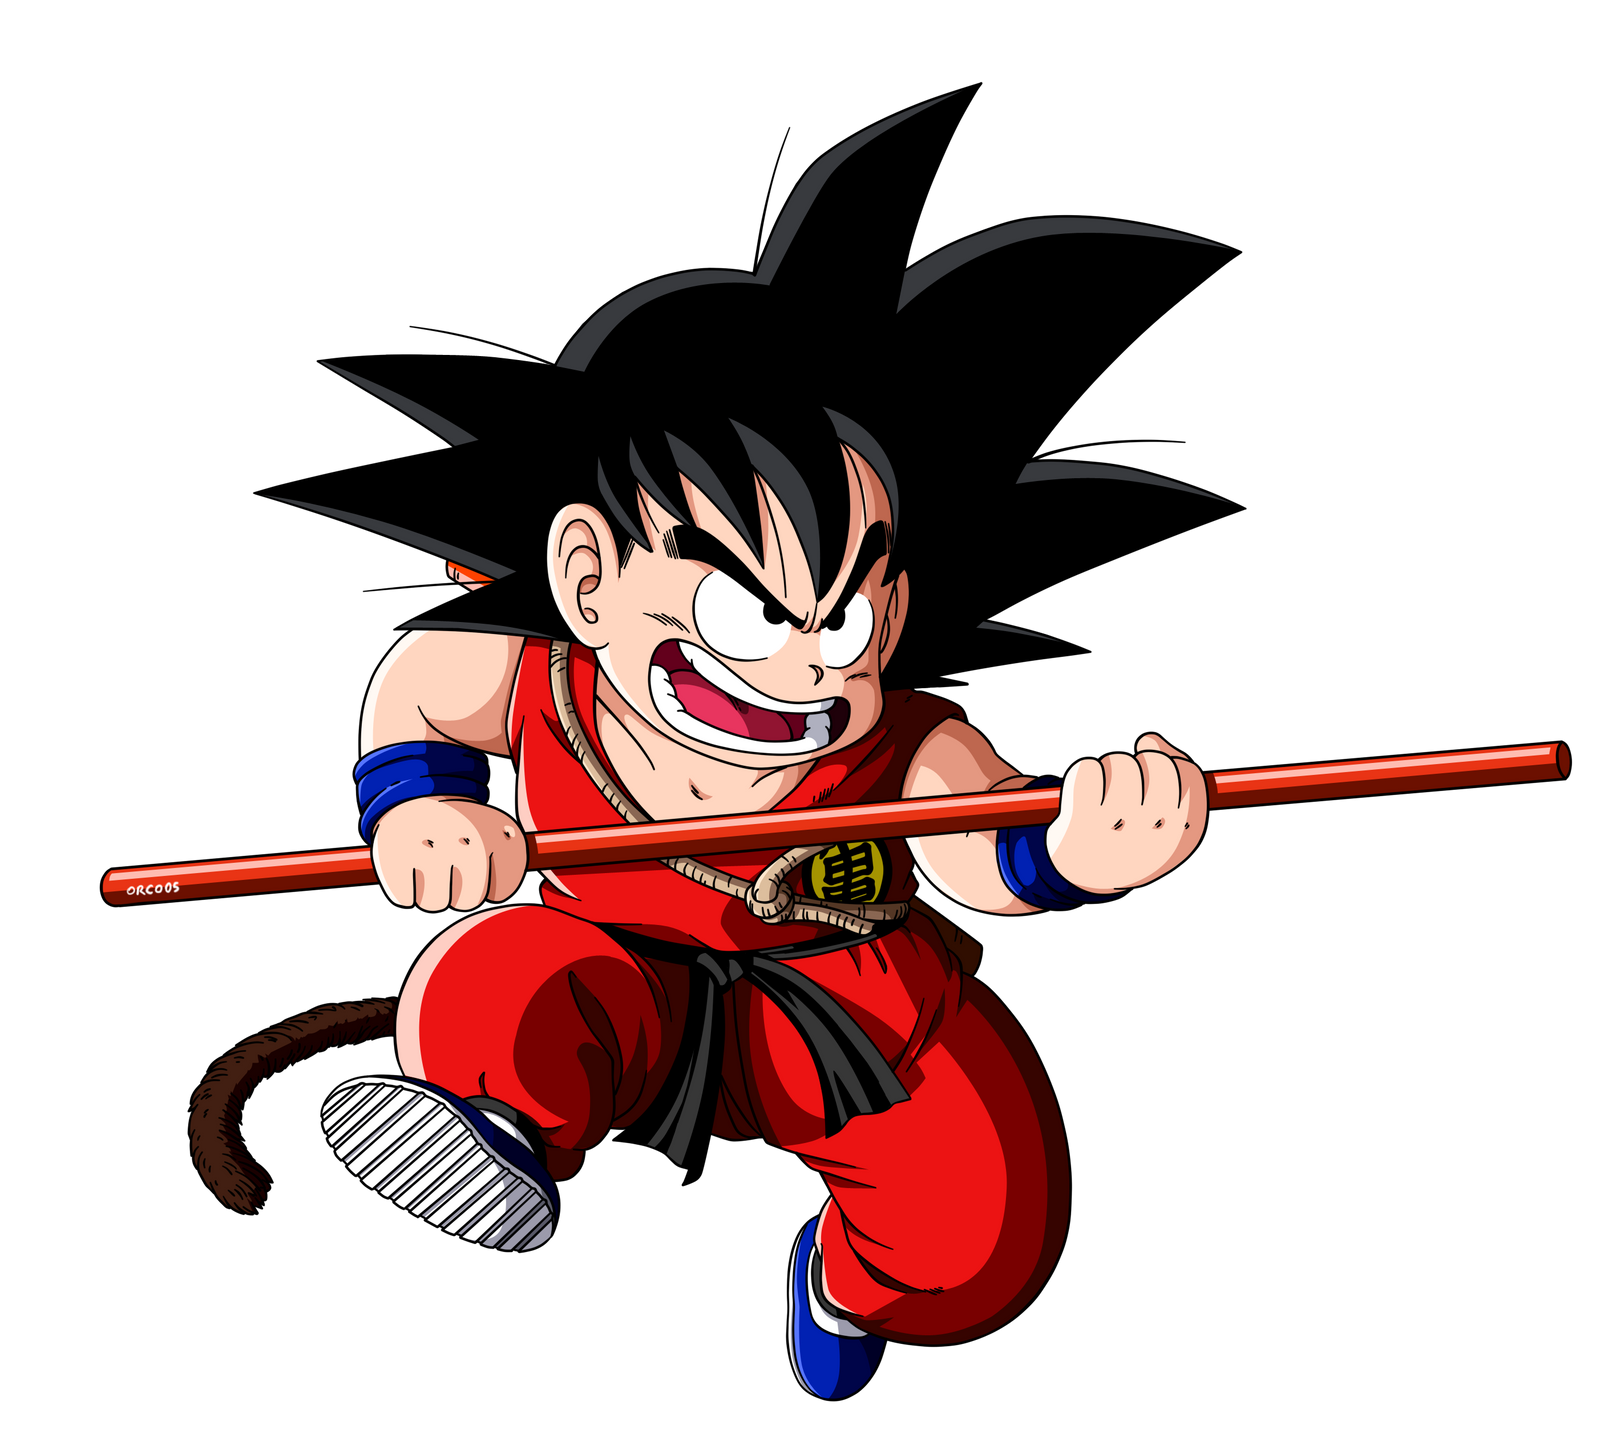 dragon ball kid goku wallpaper